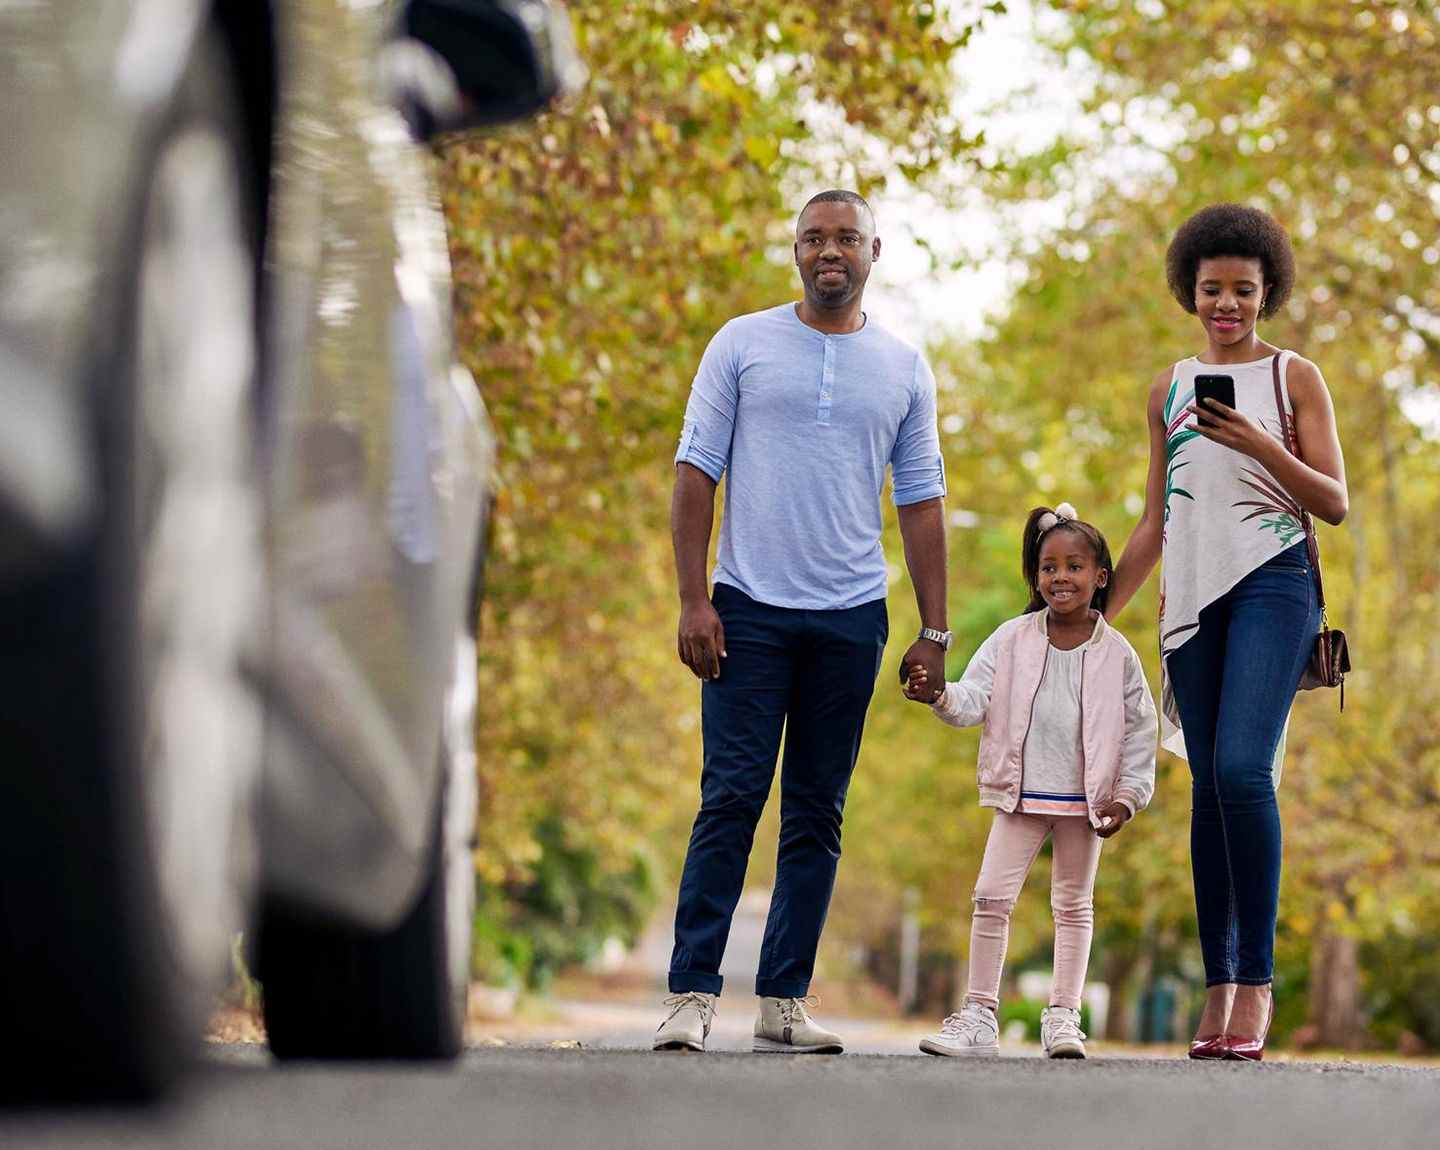 Catch up with family using the Uber Family Profile | Uber Blog